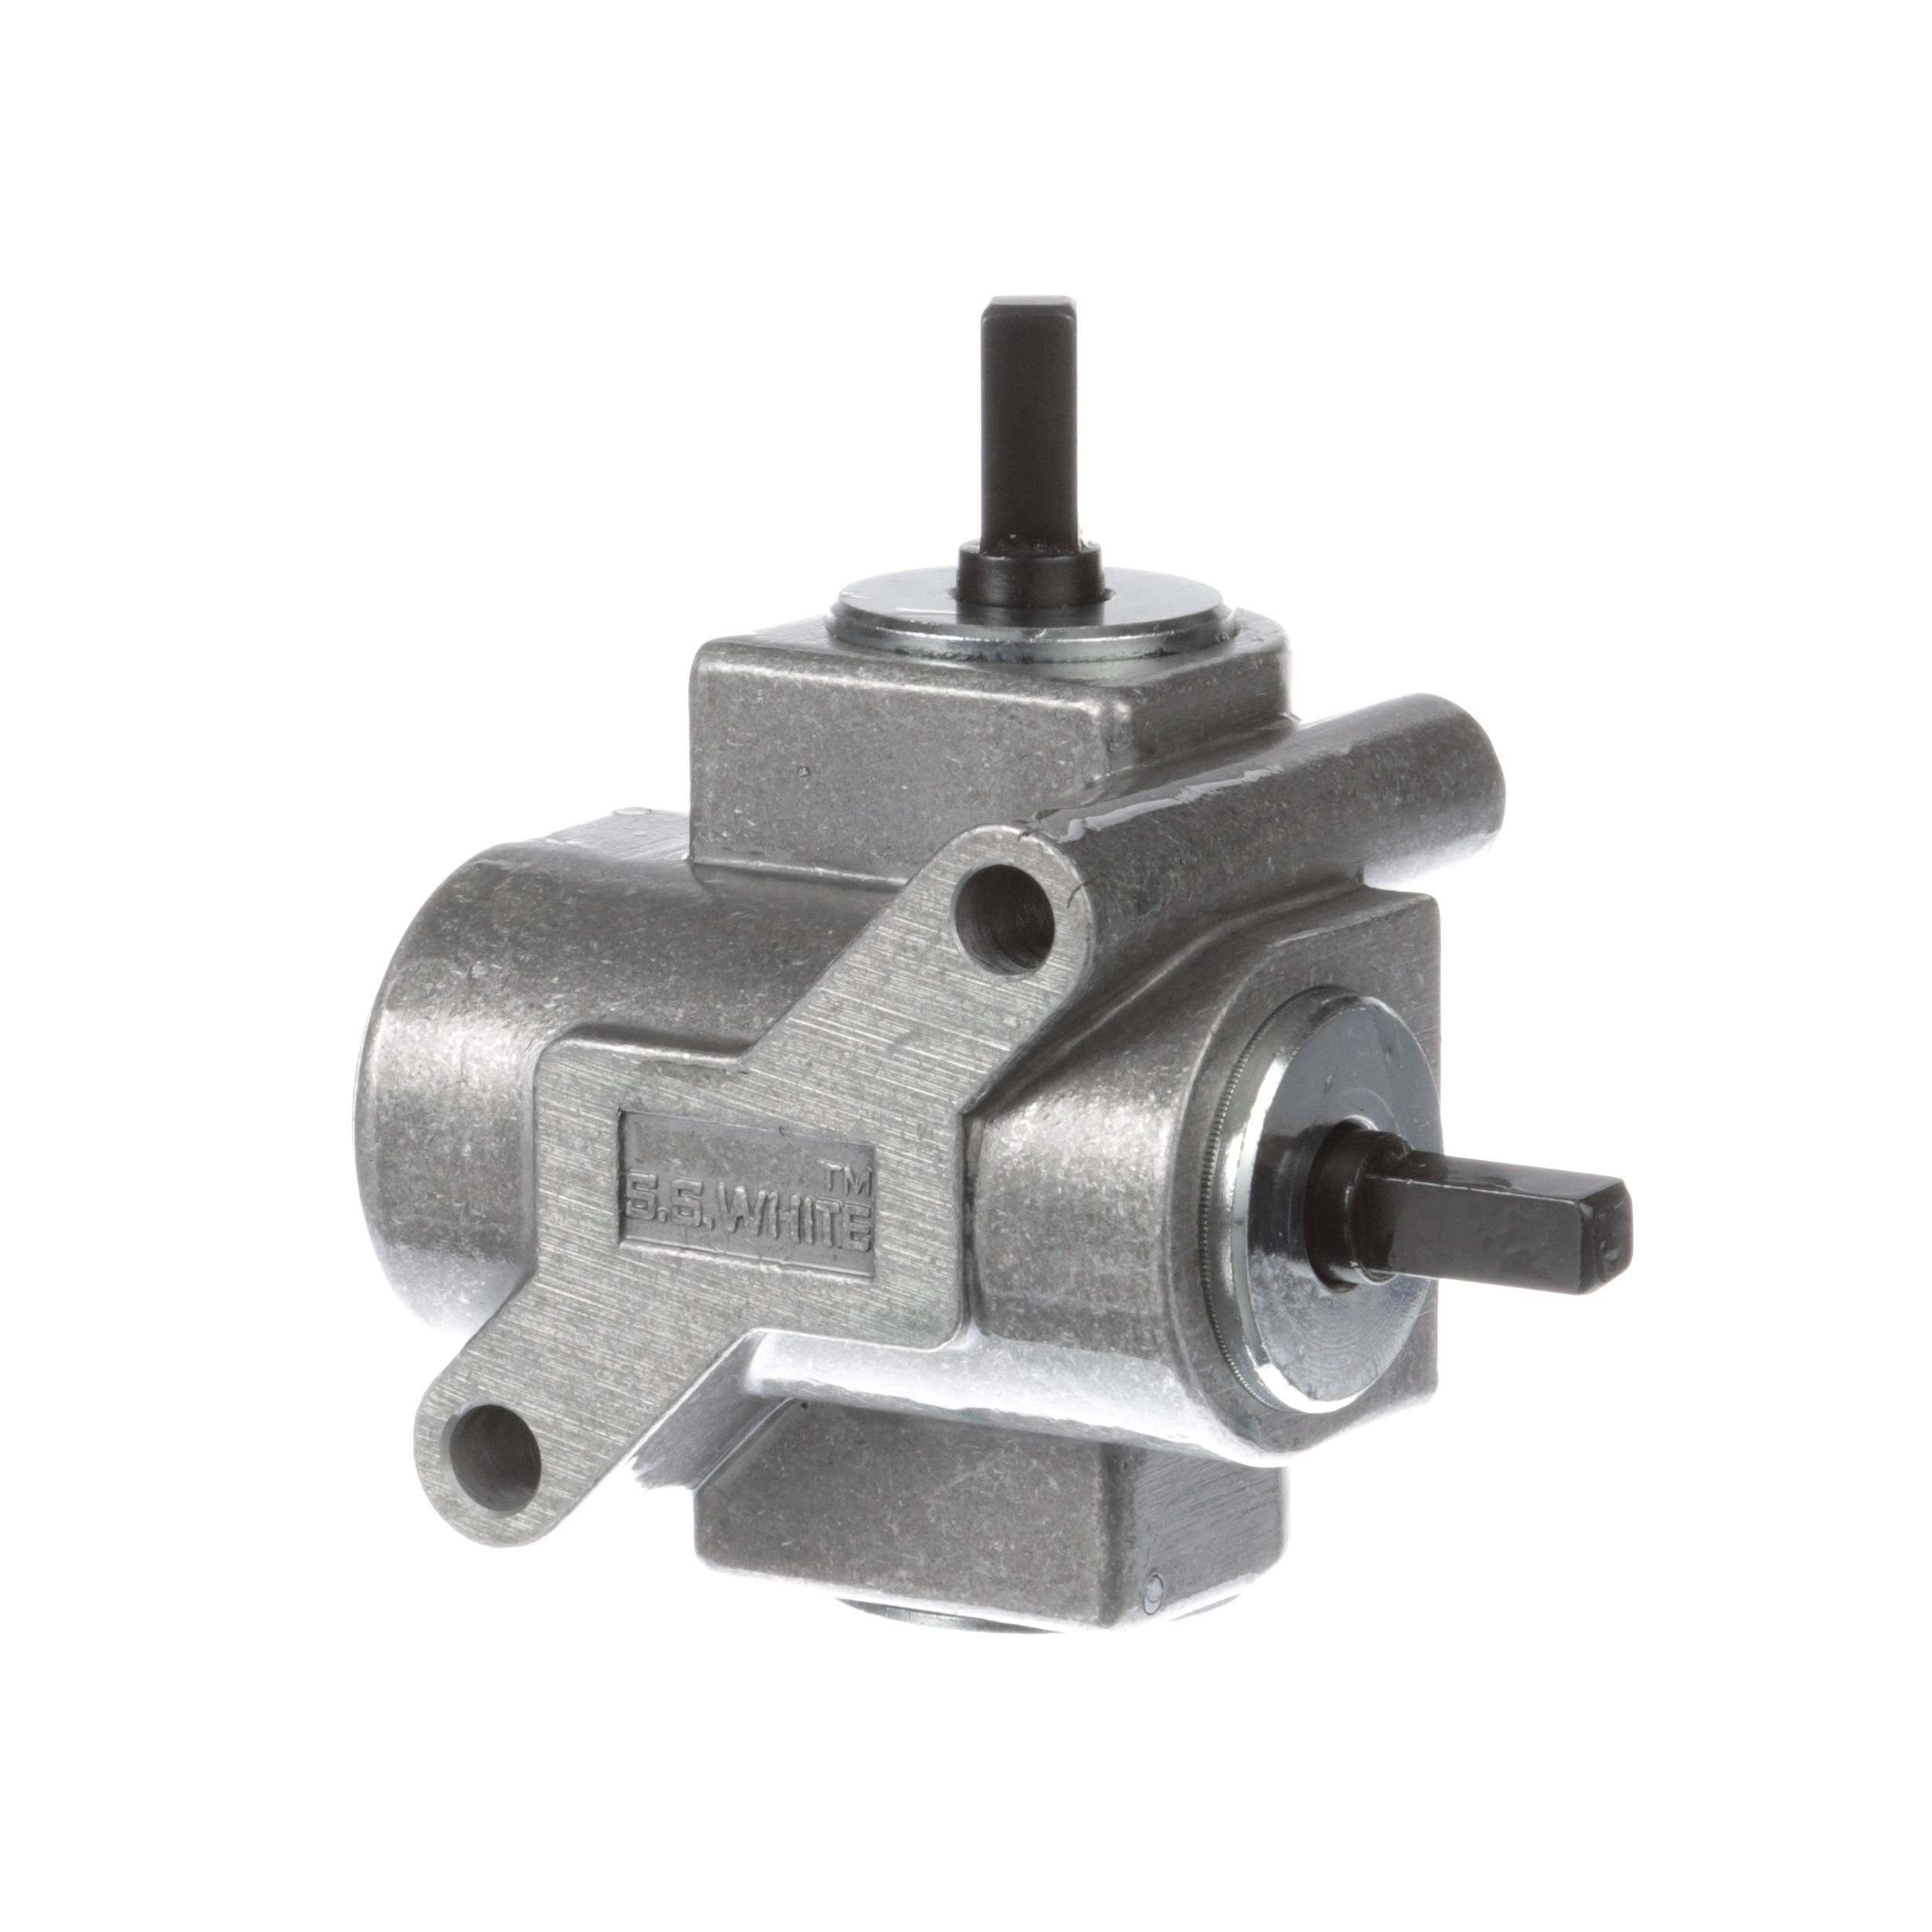 CLEVELAND GEARBOX; RIGHT ANGLE DRIVE; GEMINI 10 &